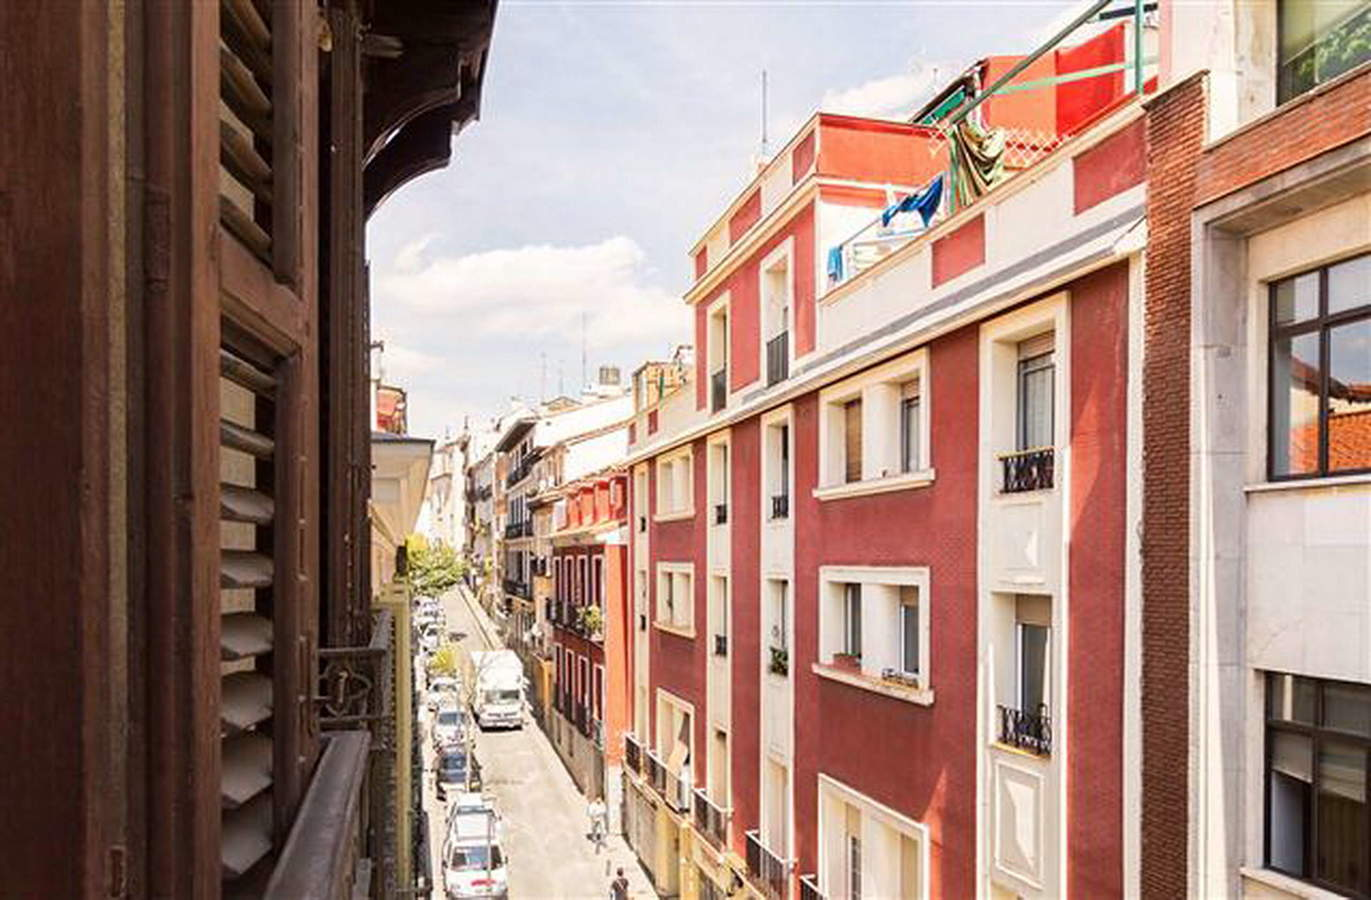 29-calle-del-barco--2-madrid-spain-6